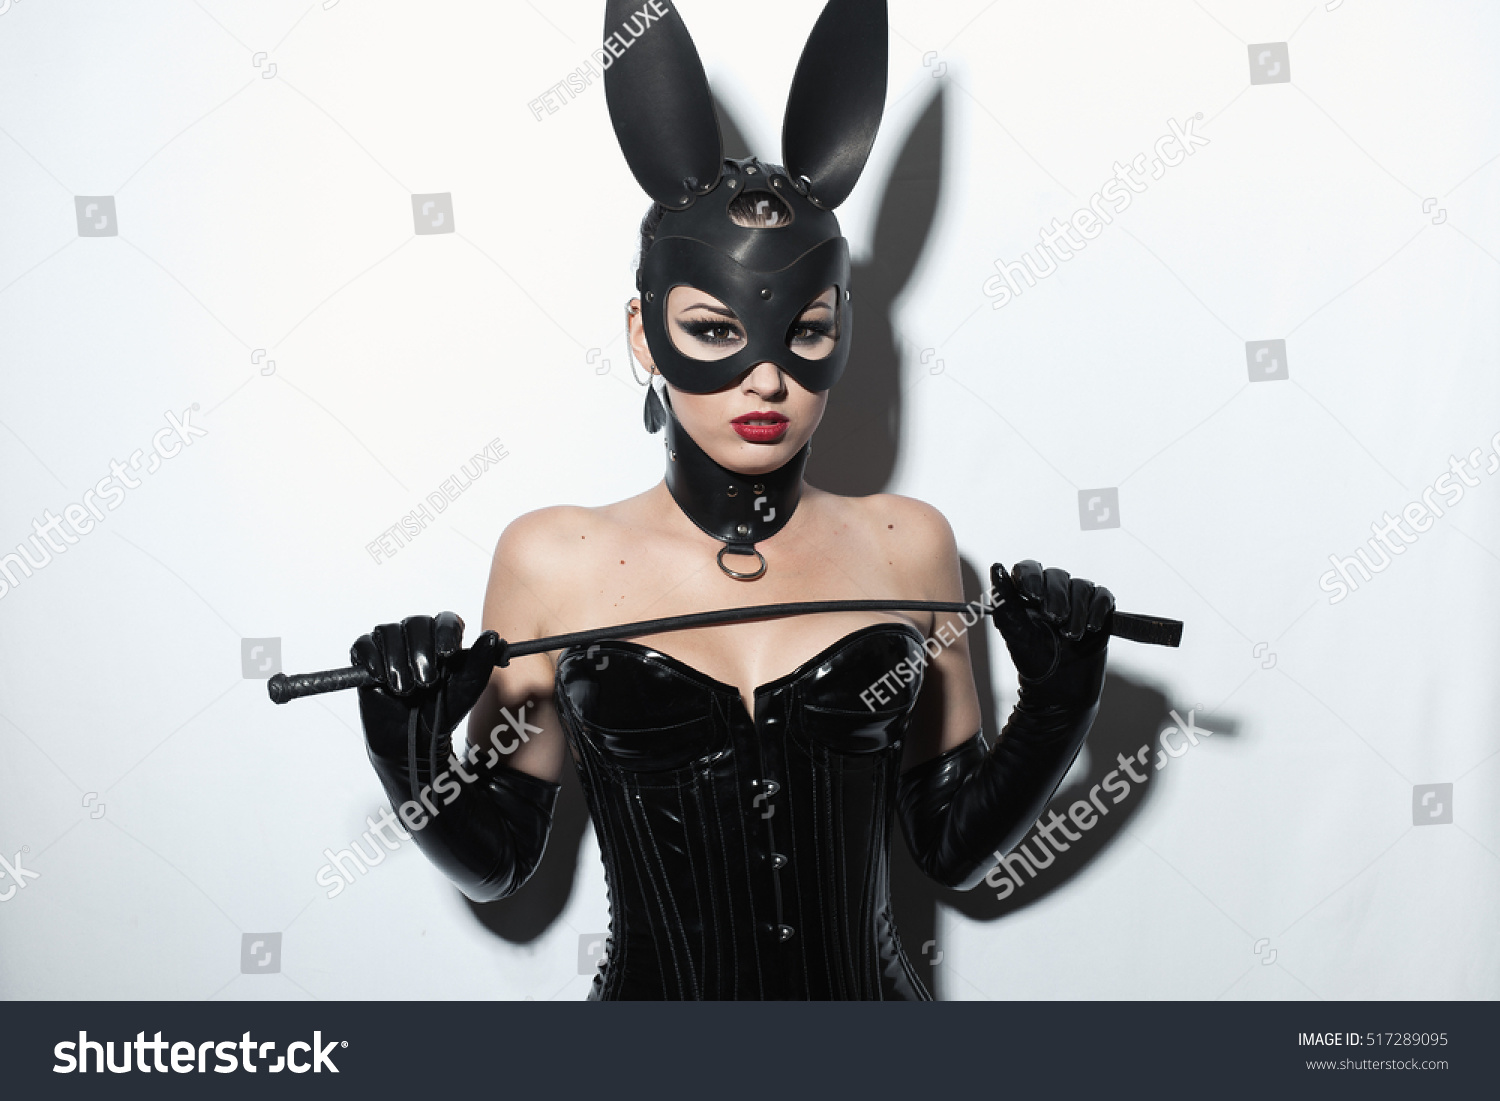 image Mistress with mask i know you